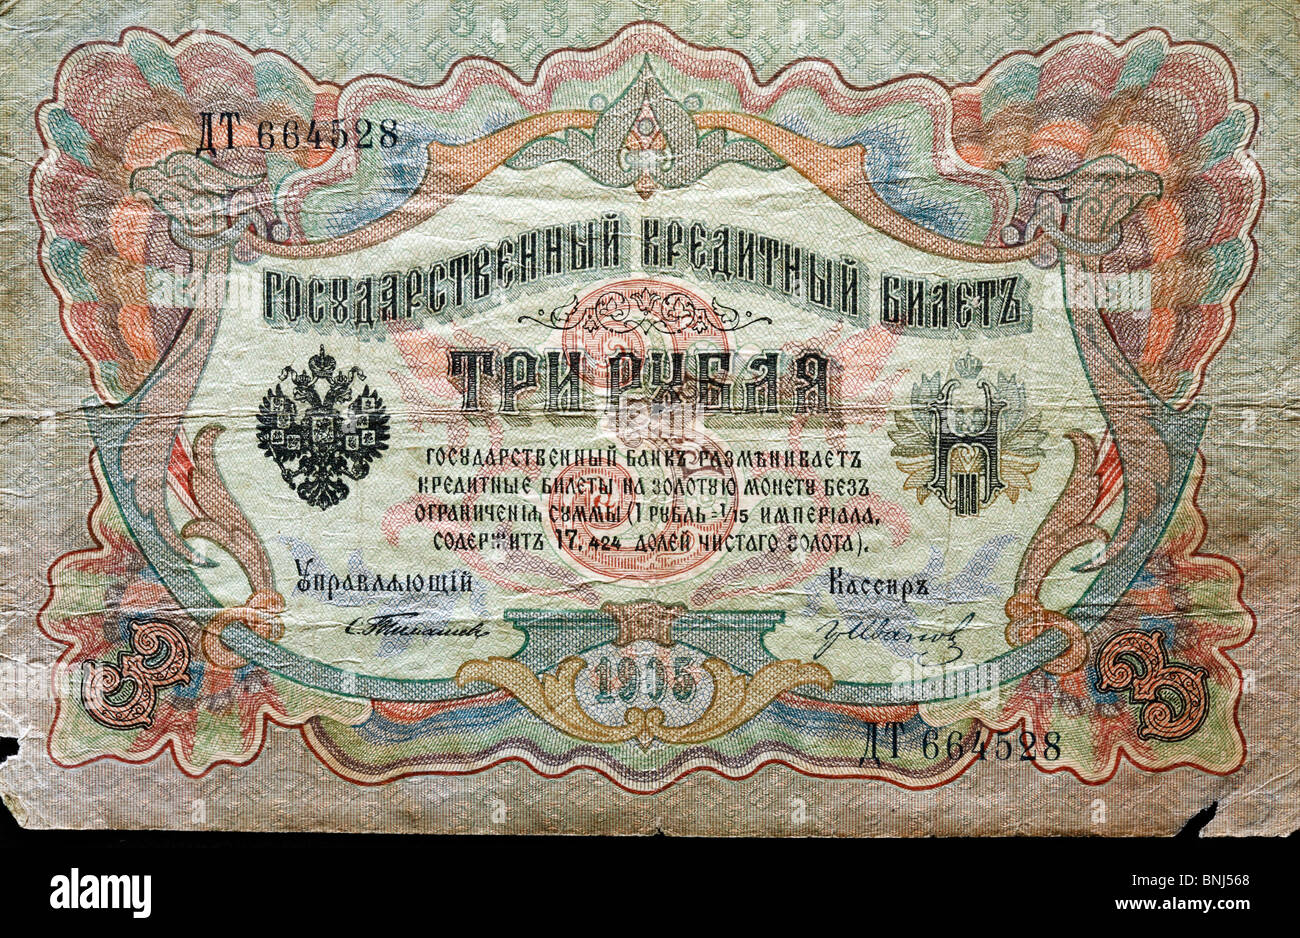 Color Russia Russian numismatics Note rouble ruble money 1900s Collectible Collection Collecting - Stock Image